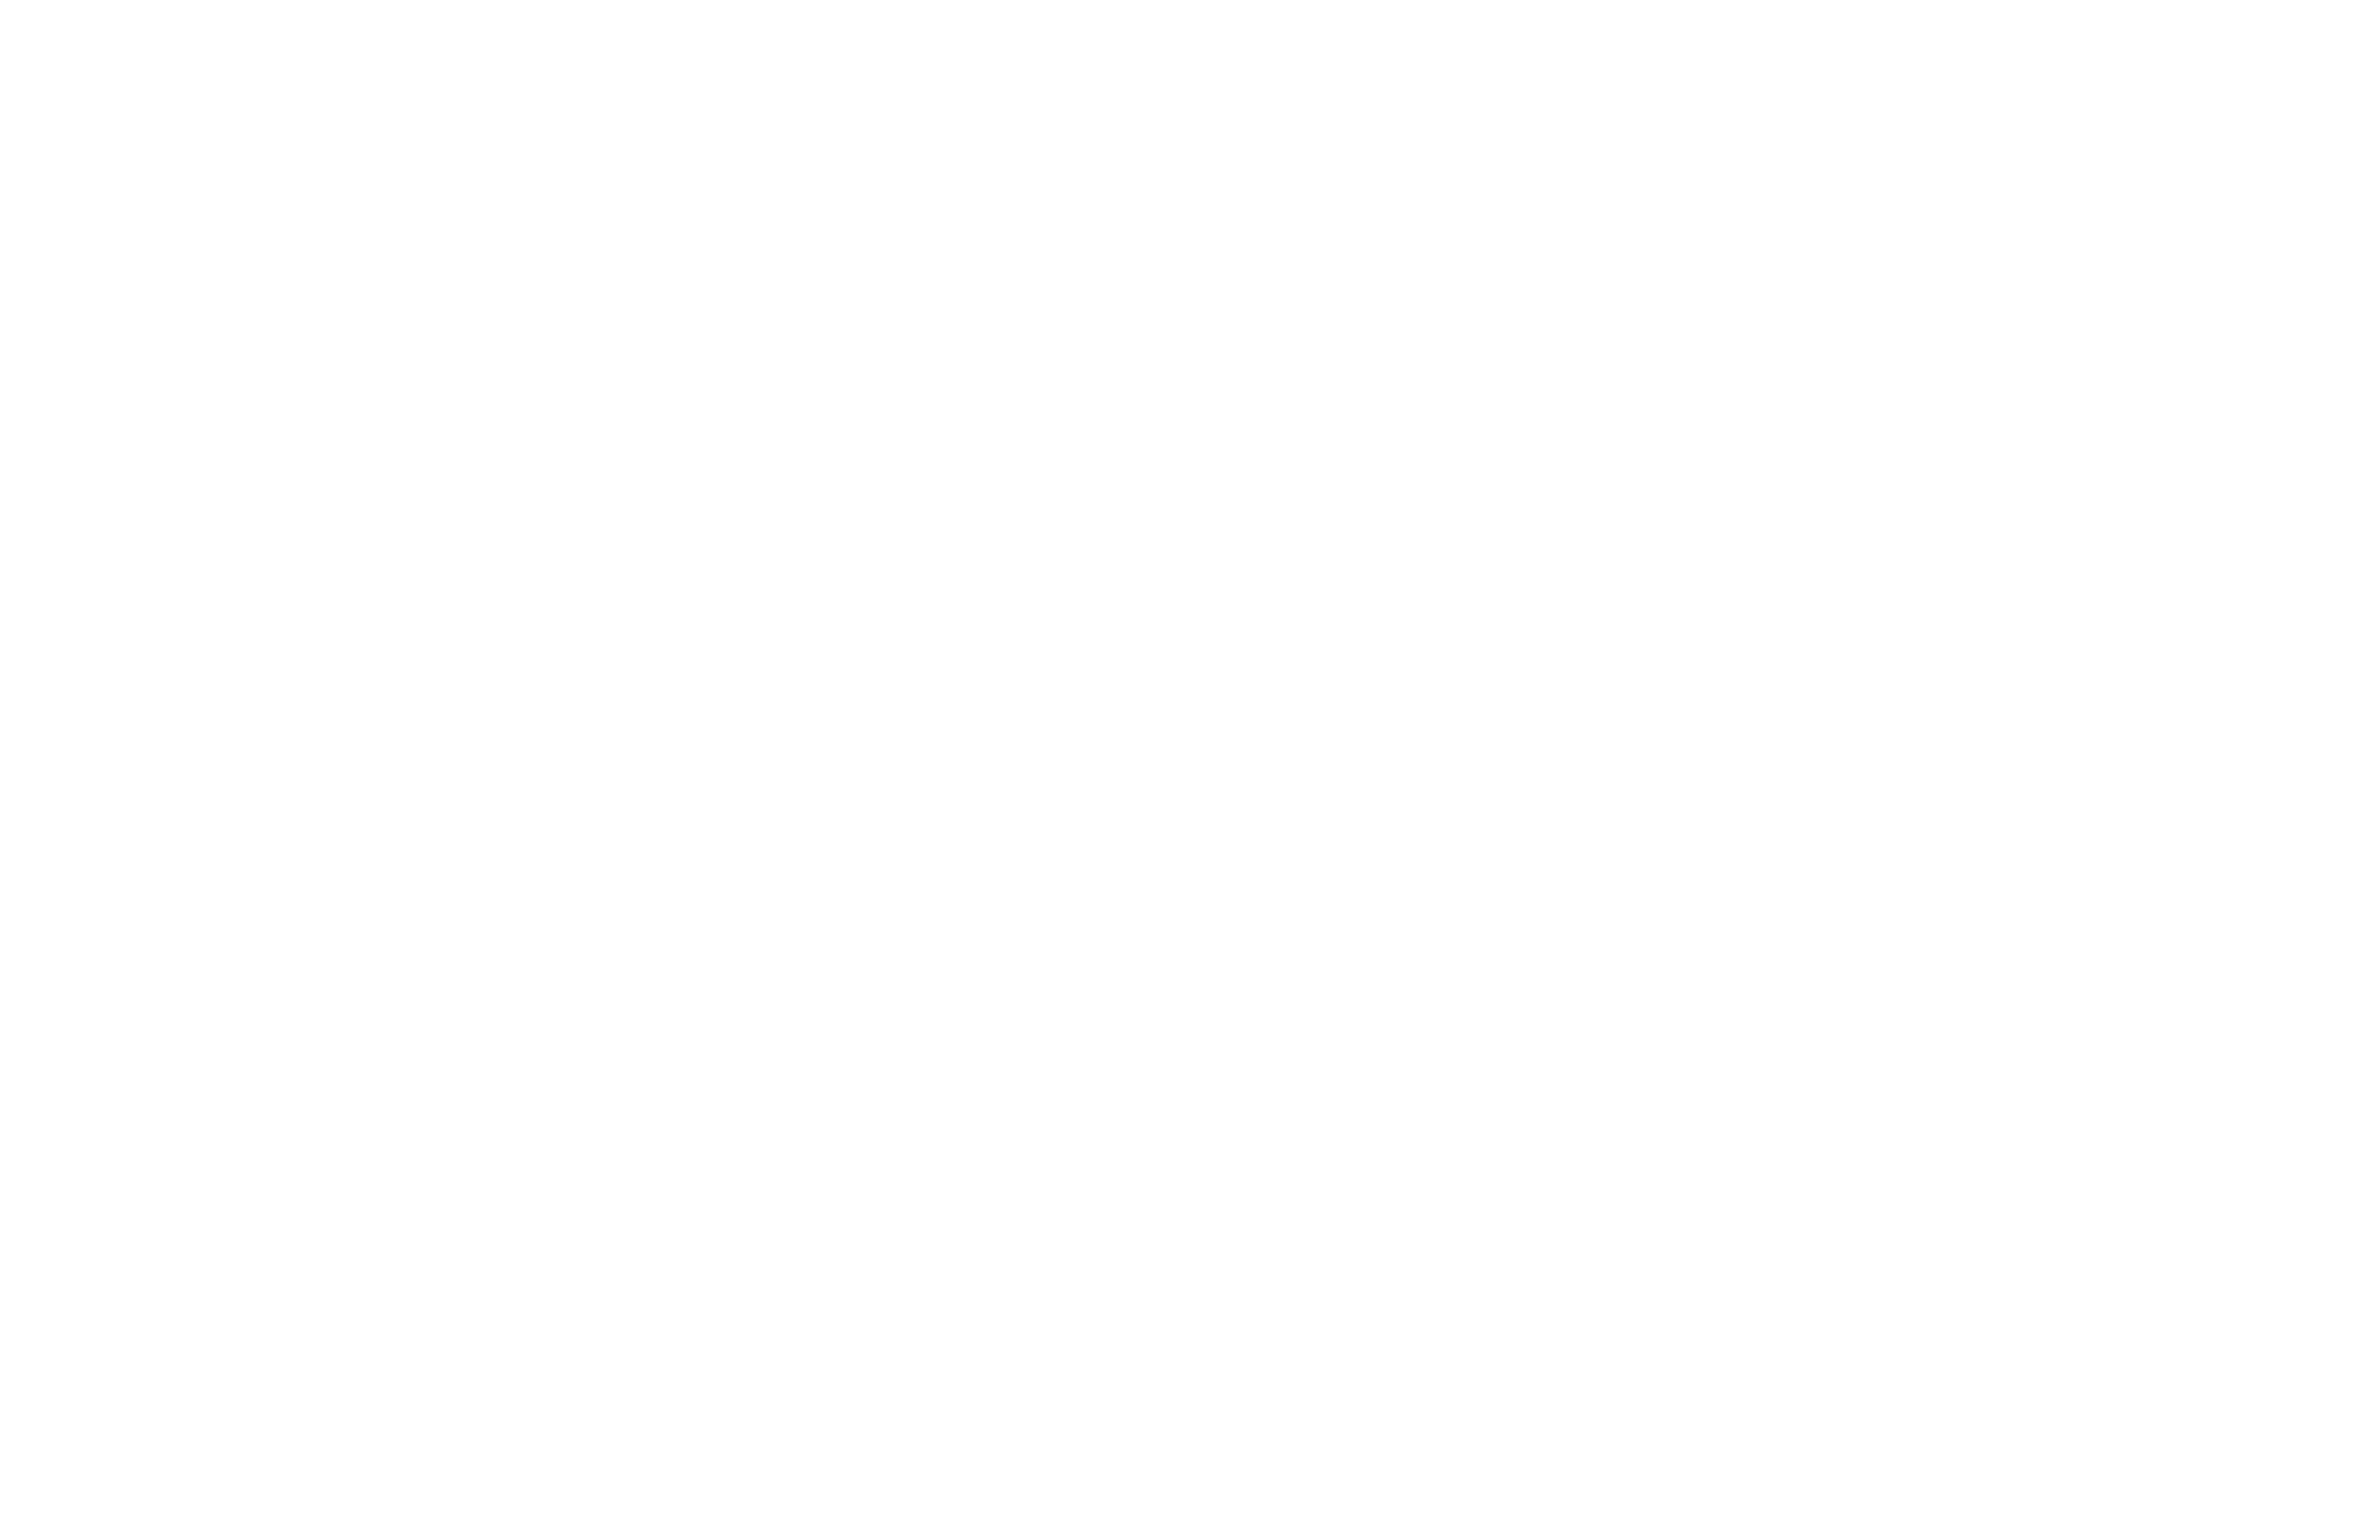 Logo_Hark_ONLY_White-01.png